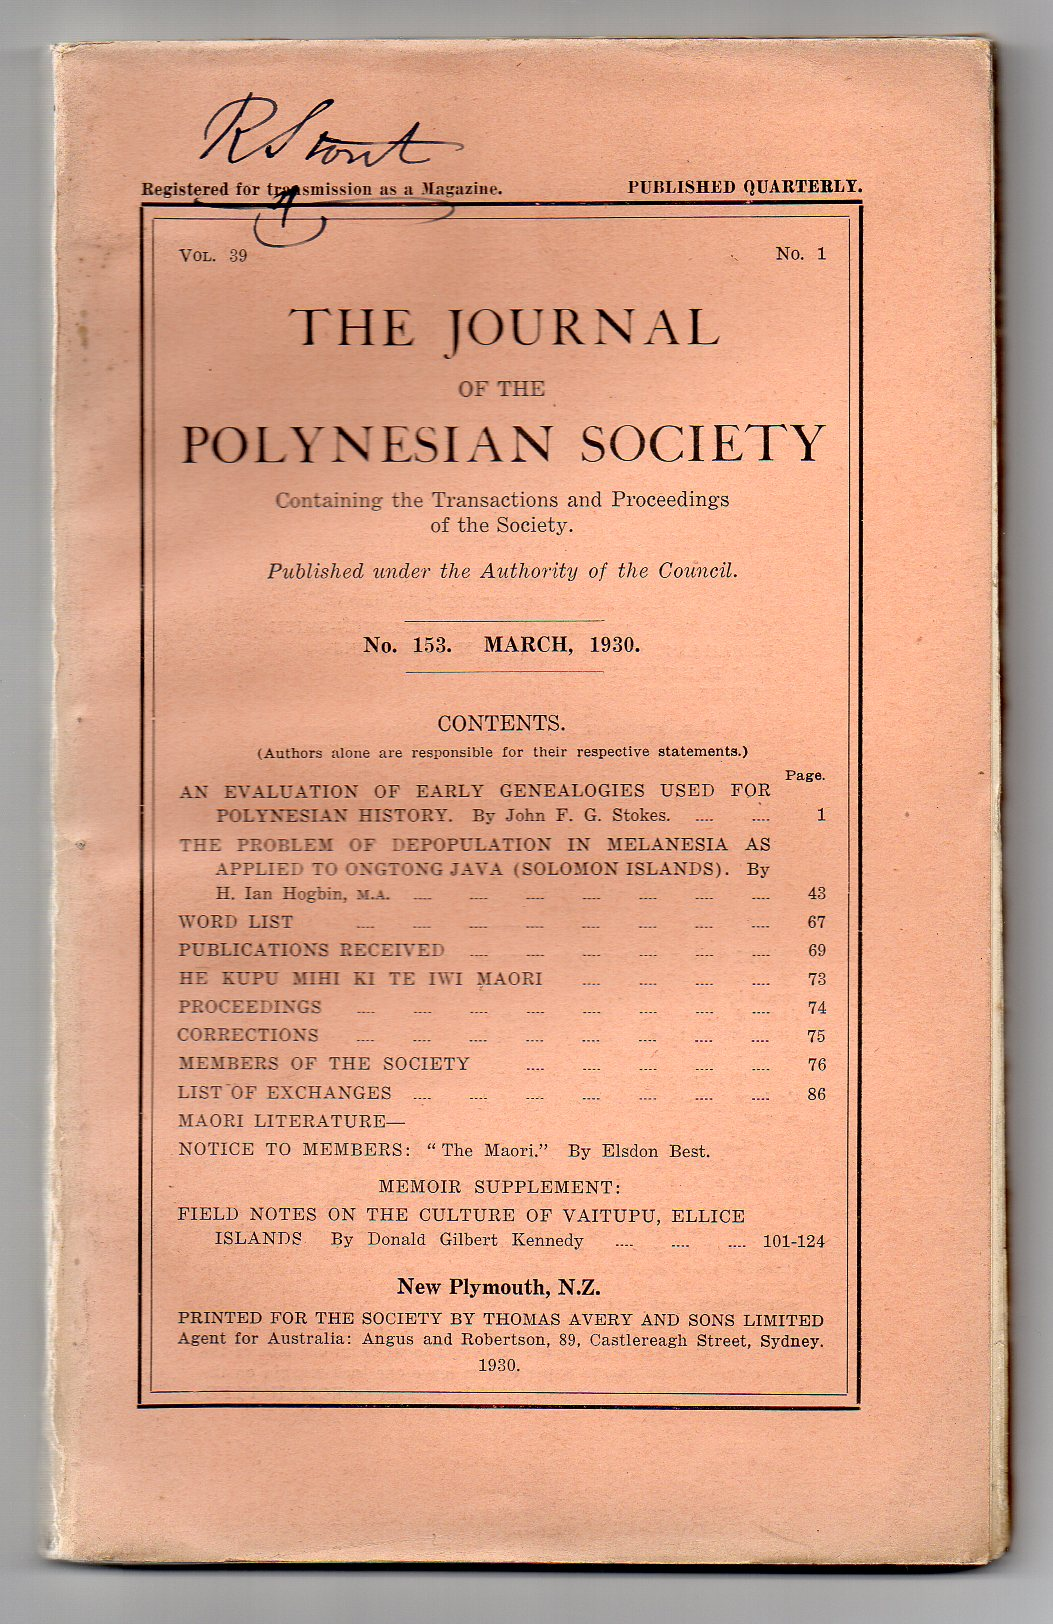 Image for The Journal of the Polynesian Society. No. 153. March, 1930 - Vol. 39, No. 1.